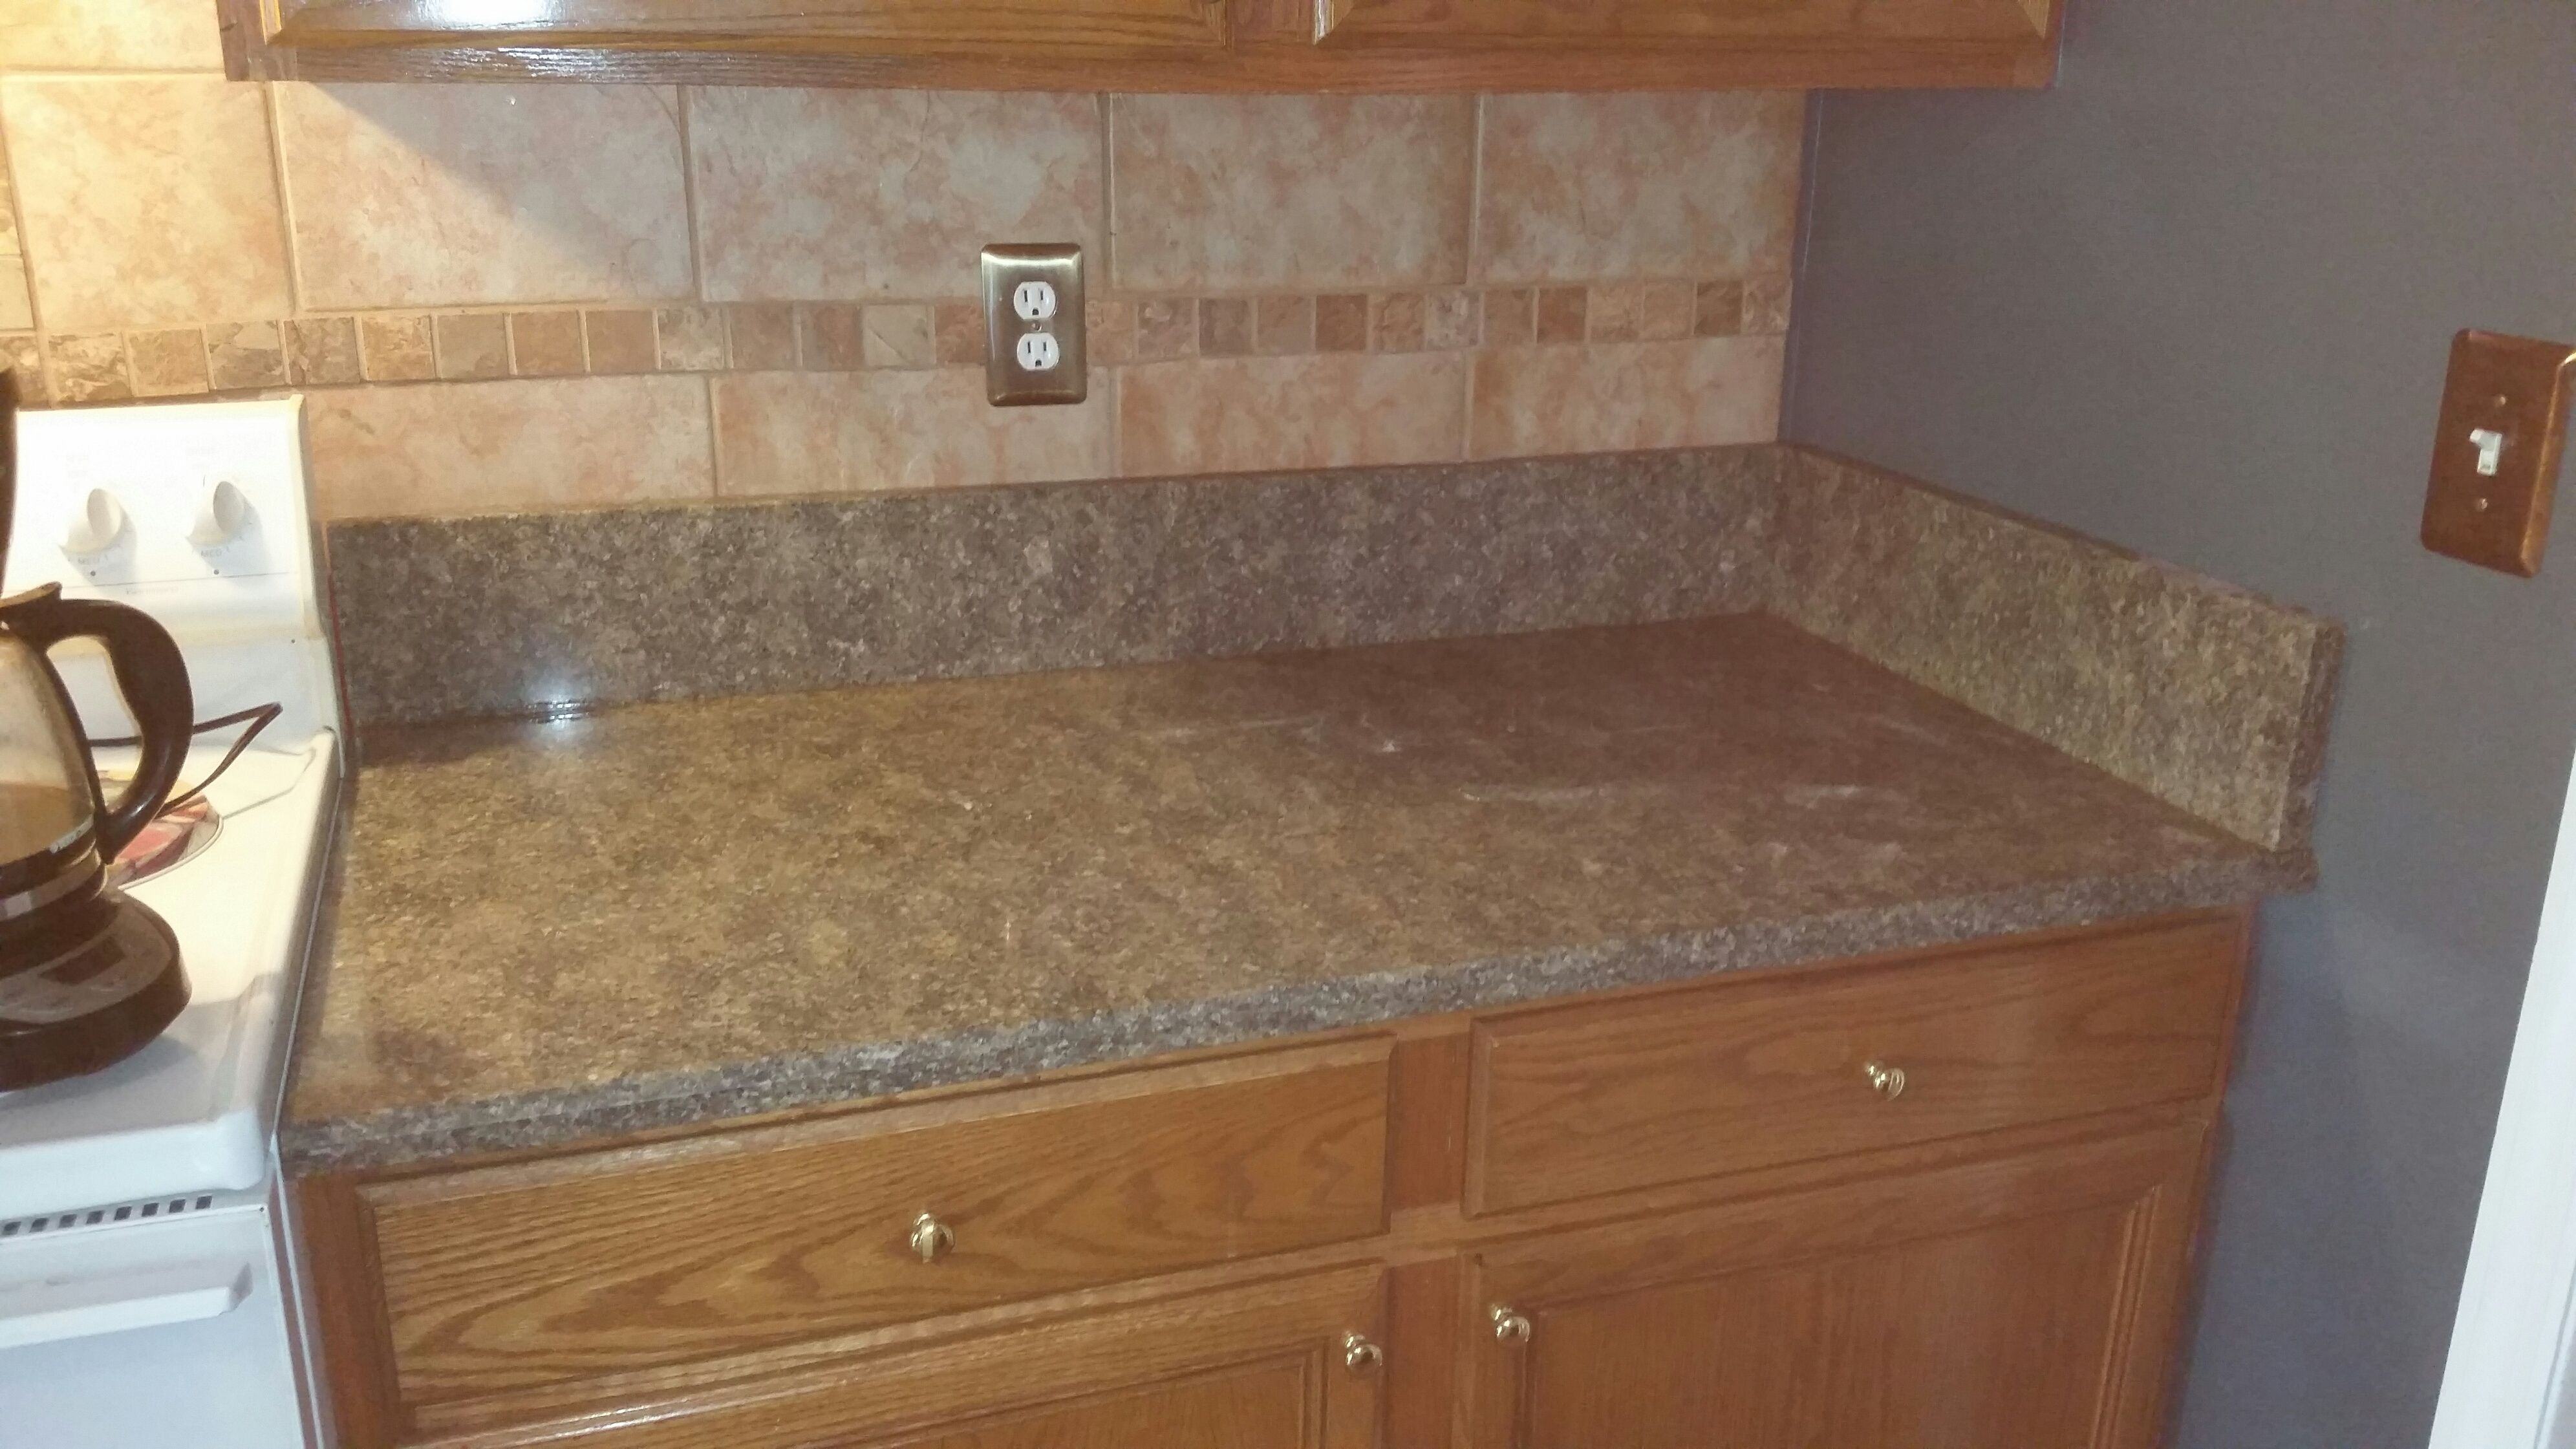 Wildwood Lg Viatera Quartz Kitchen Countertop Install For Buuck Knoxville 39 S Stone Interiors